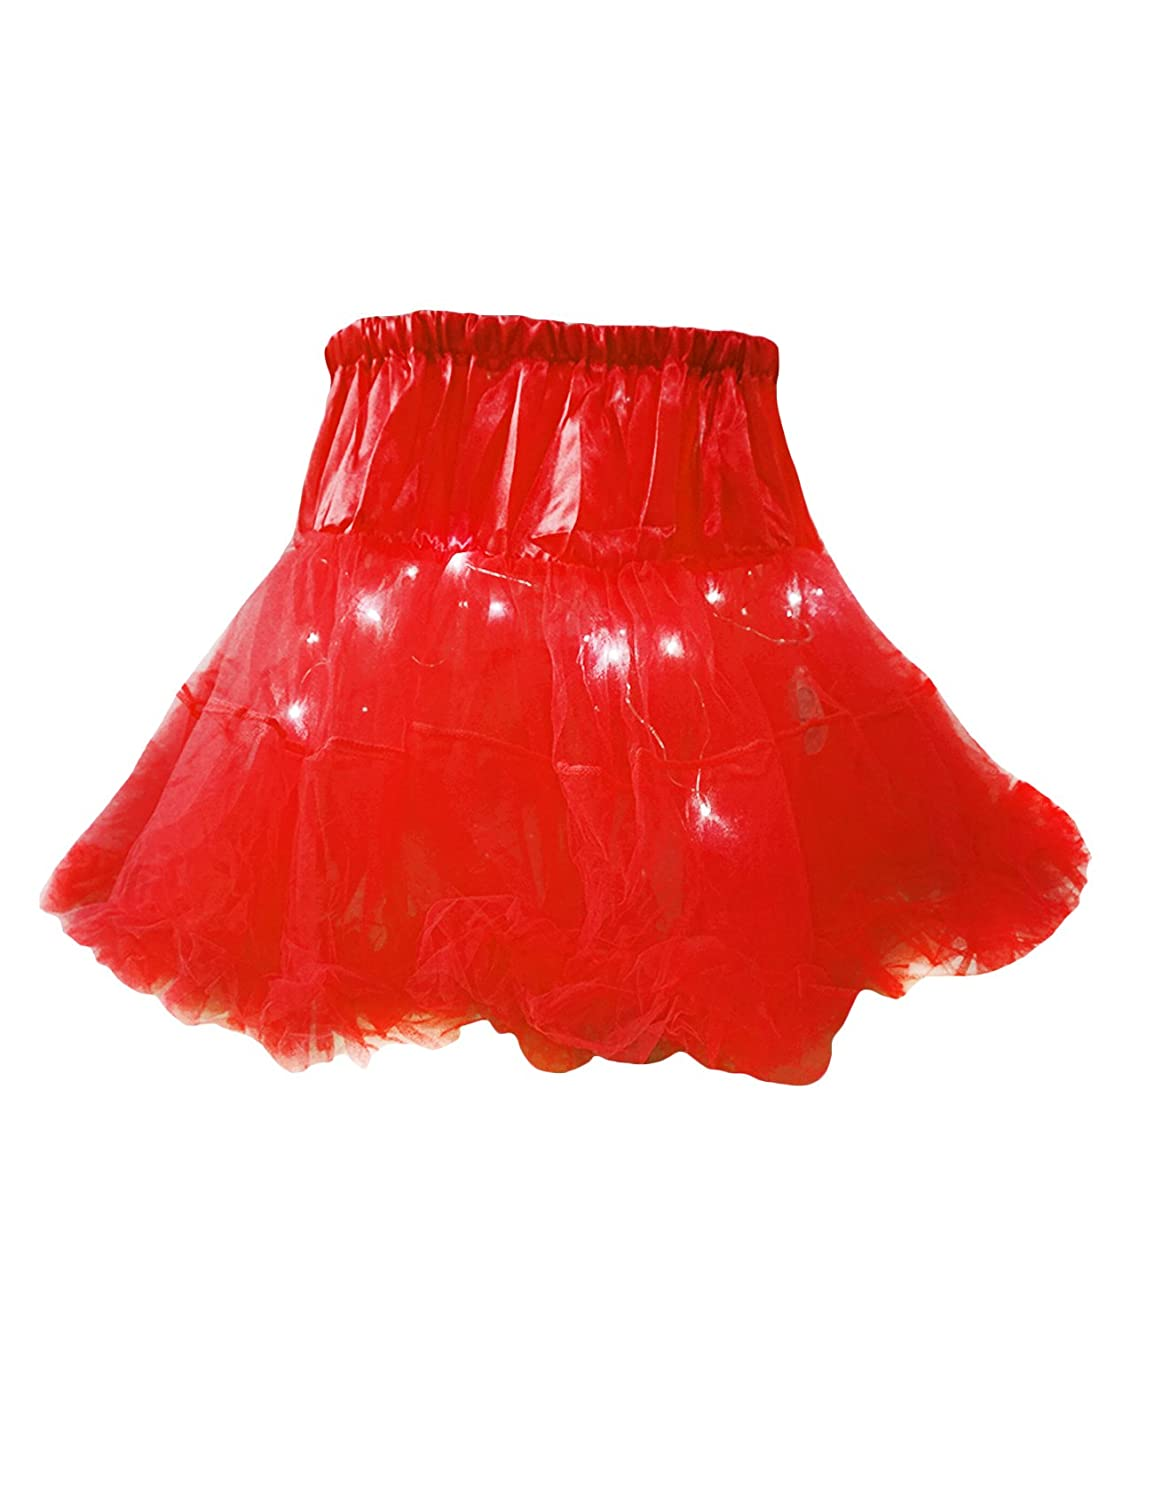 Bestgift Women's Solid Color LED Light Up Layered Party Tulle Tutu Skirt BSGFQQ0194-5